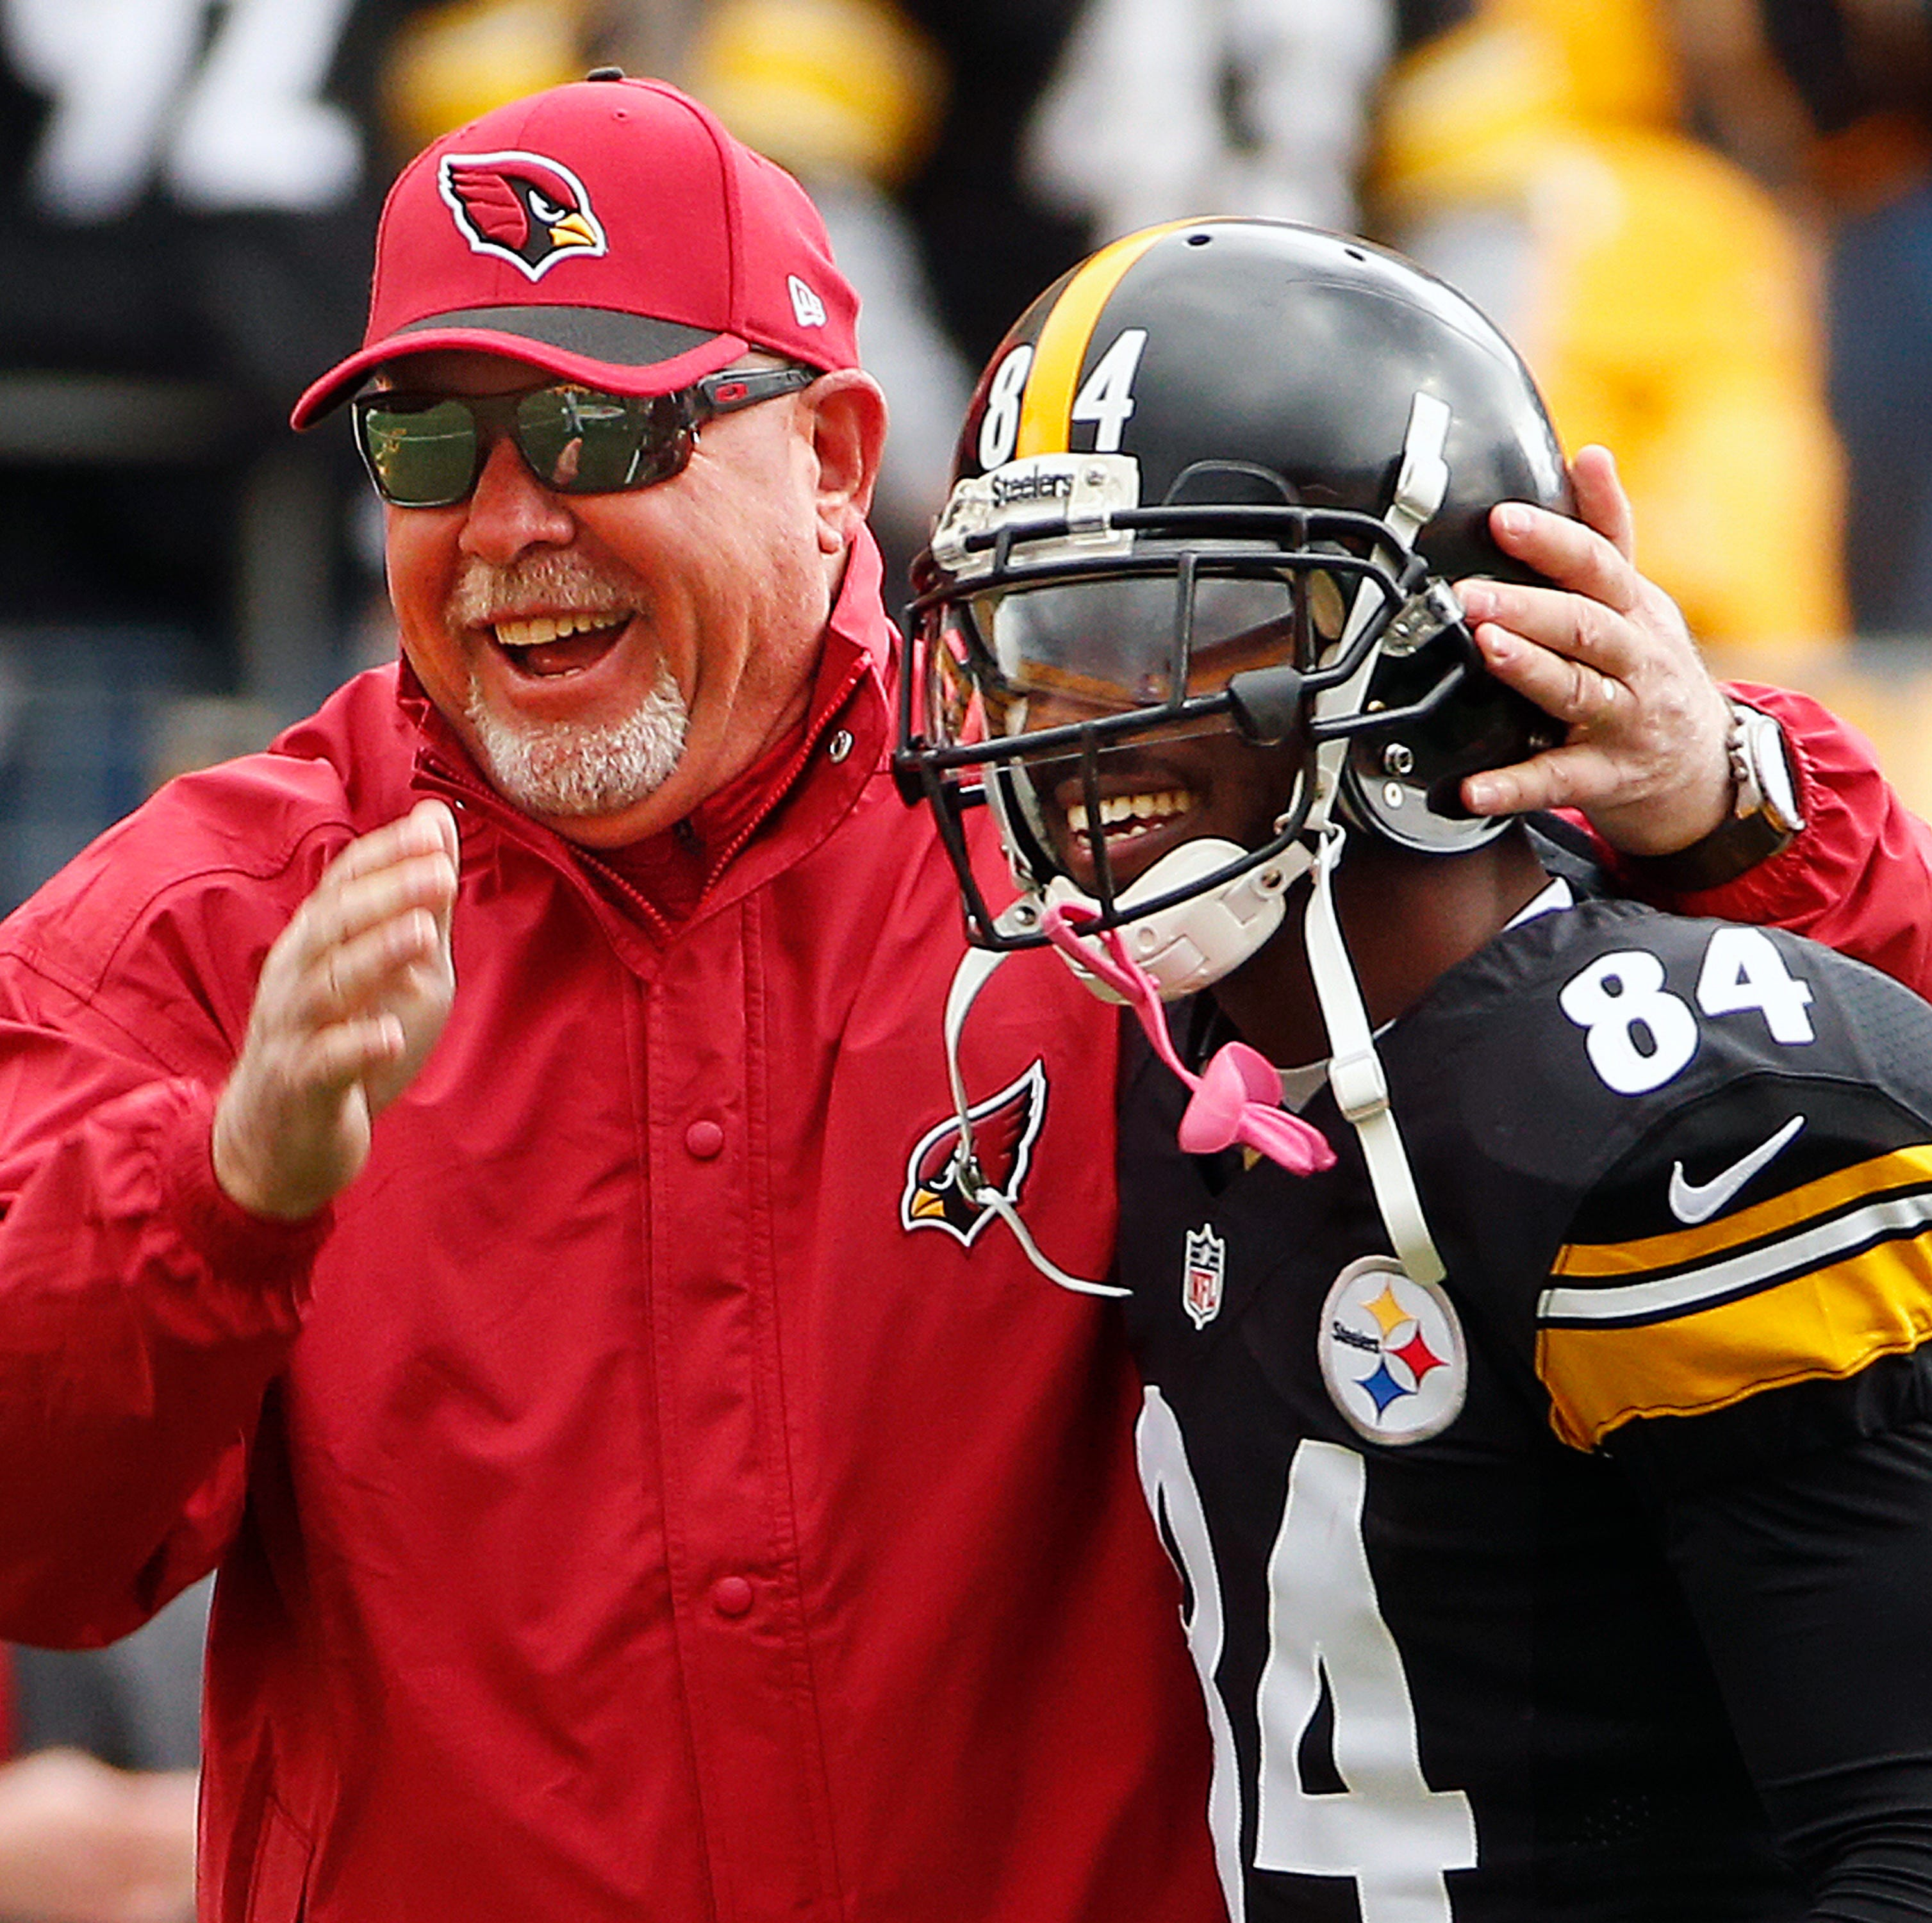 Antonio Brown, Bruce Arians feud continues with Buccaneers coach's 'too much diva' remarks